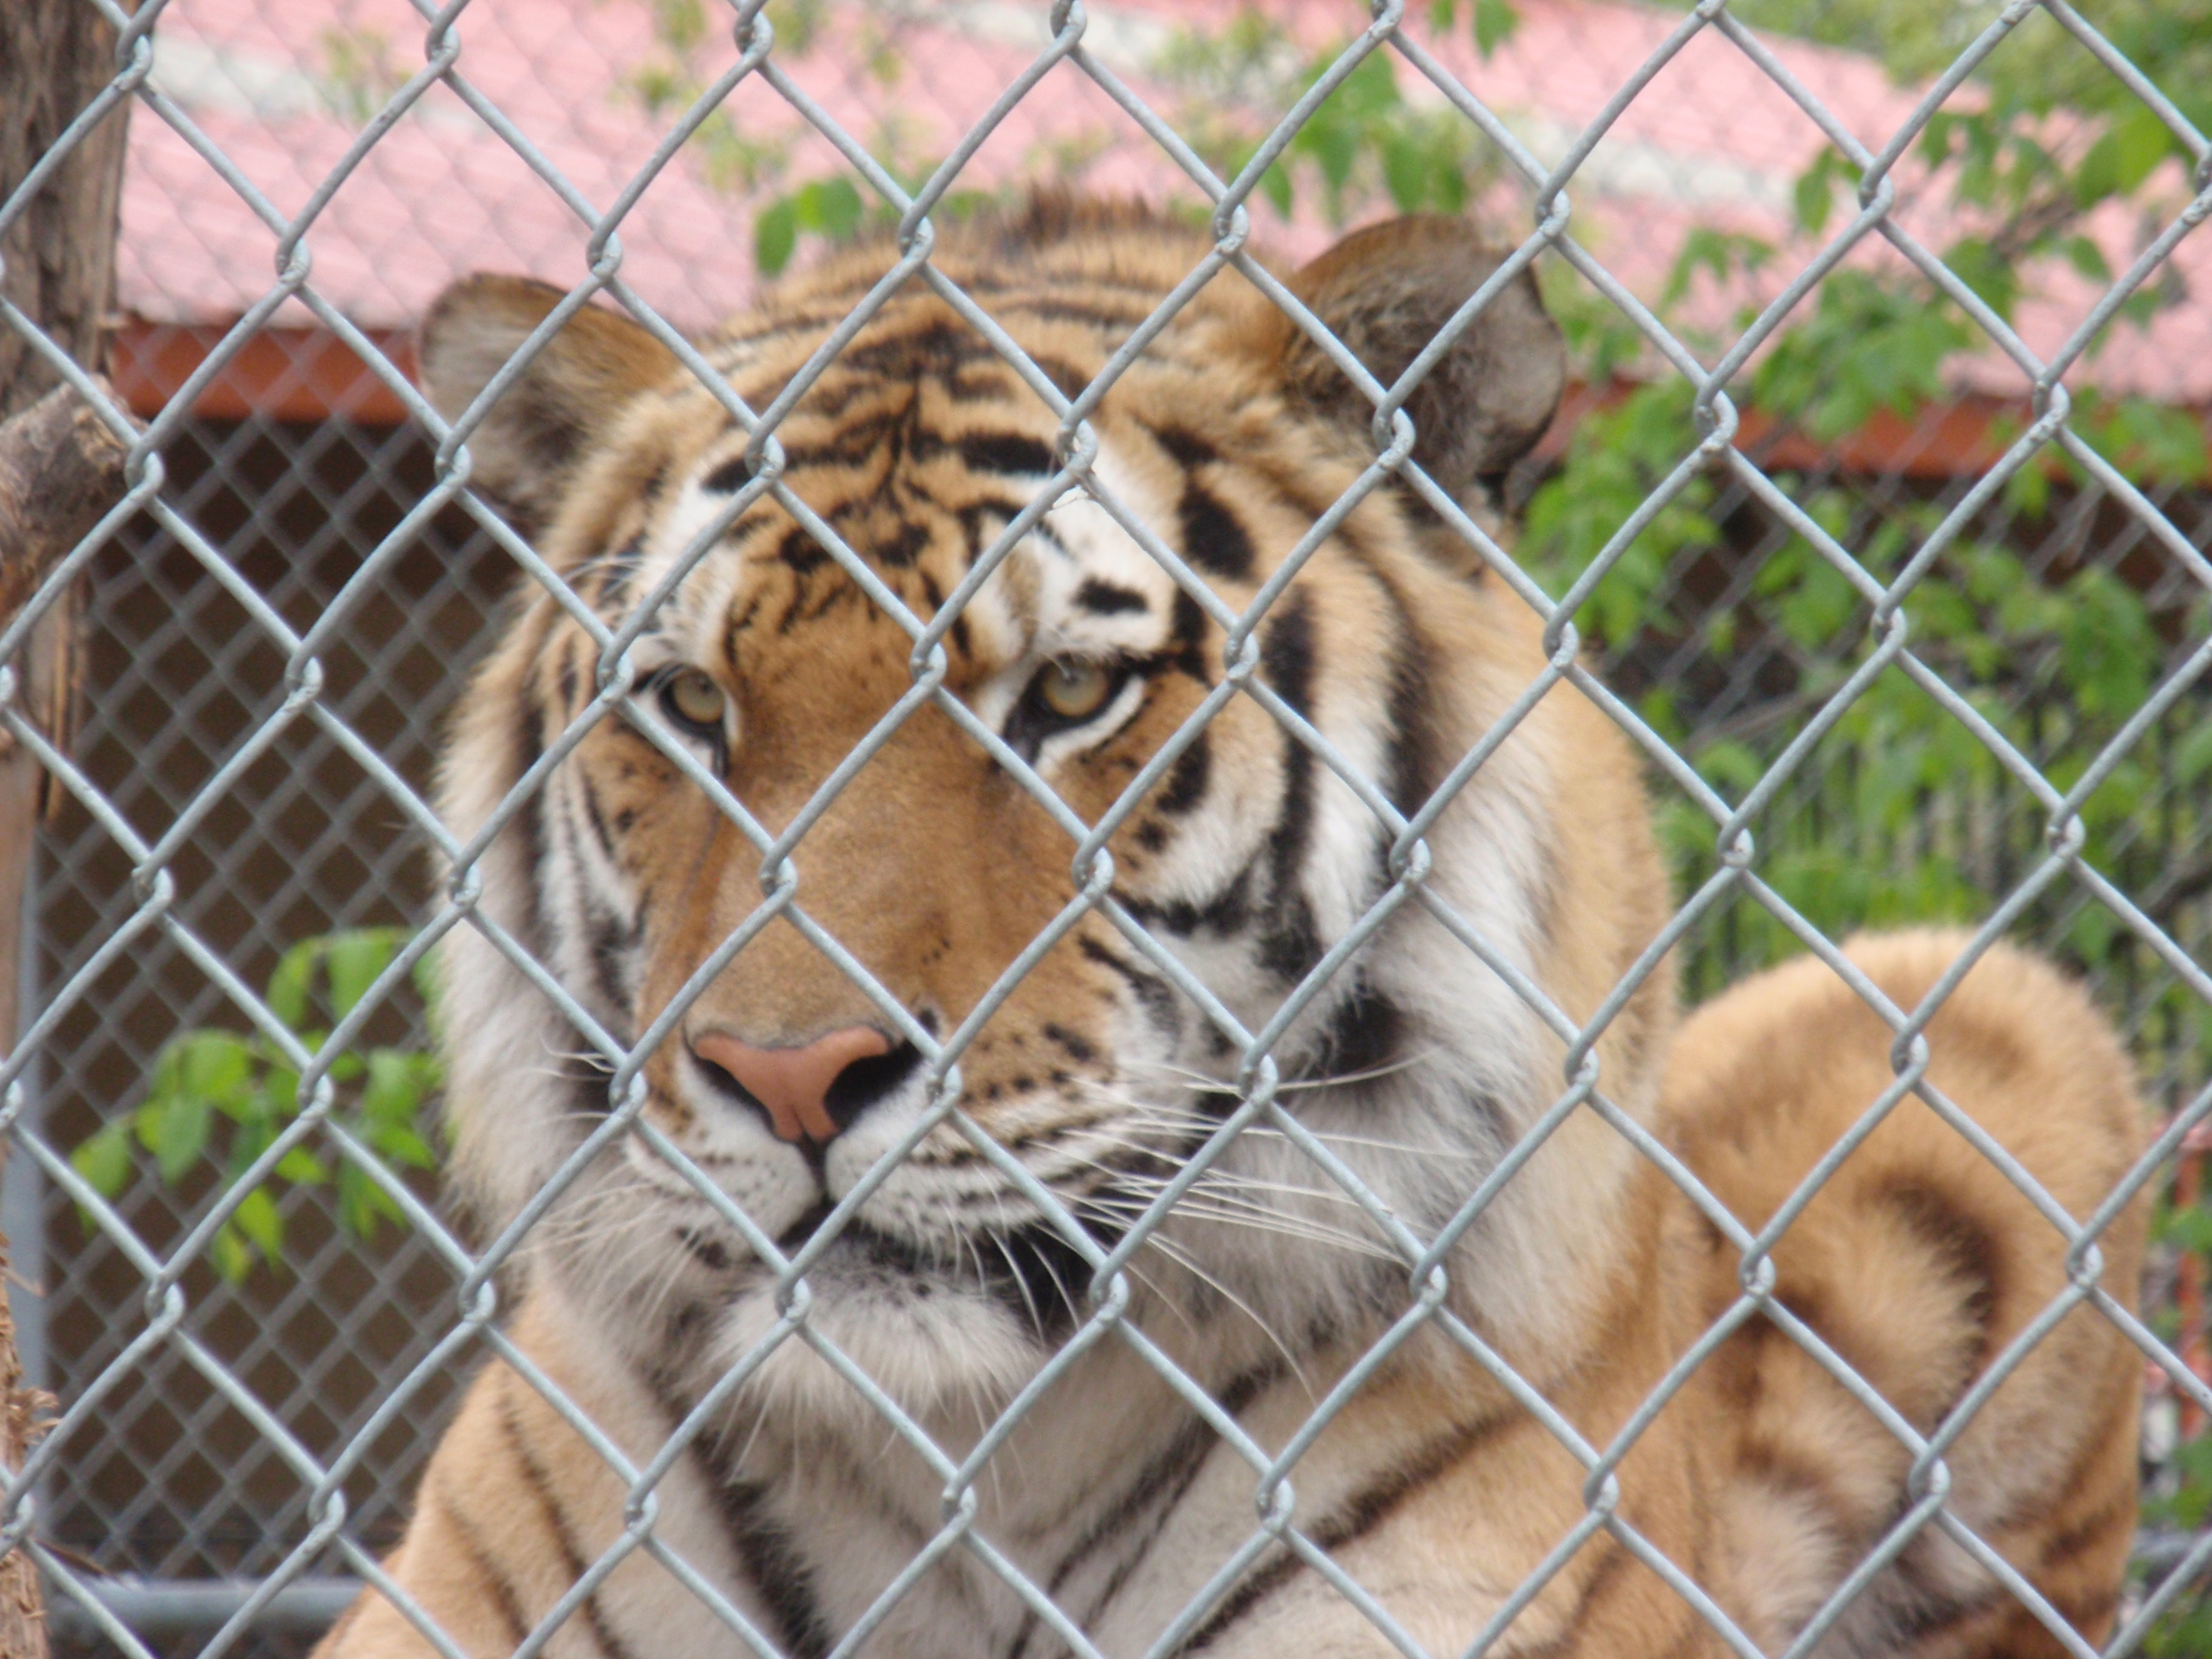 Tiger at Minot zoo. Photo by James Ulvog.